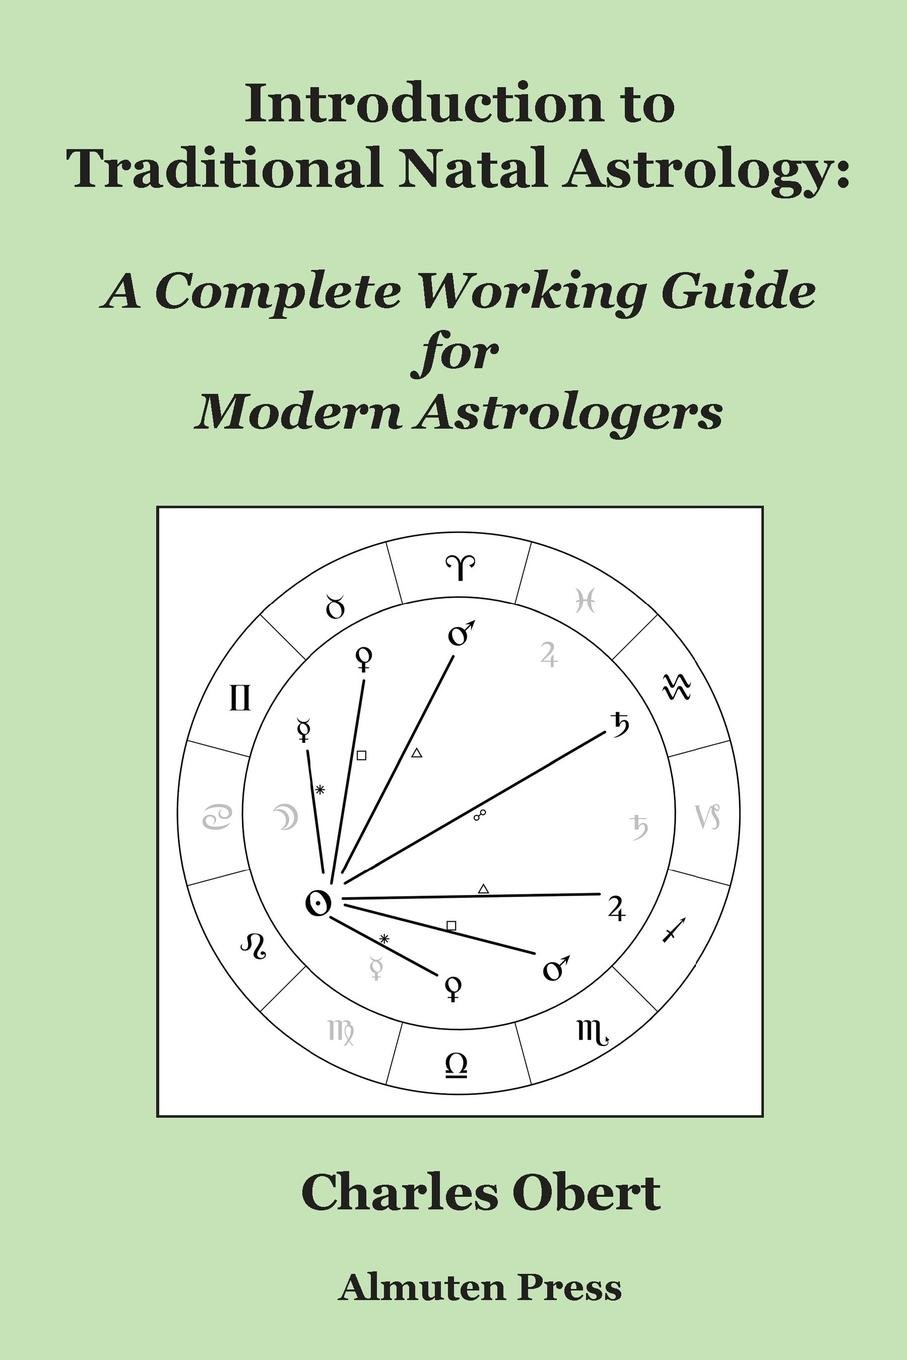 Introduction to Traditional Natal Astrology: A Complete Working Guide for Modern Astrologers pdf